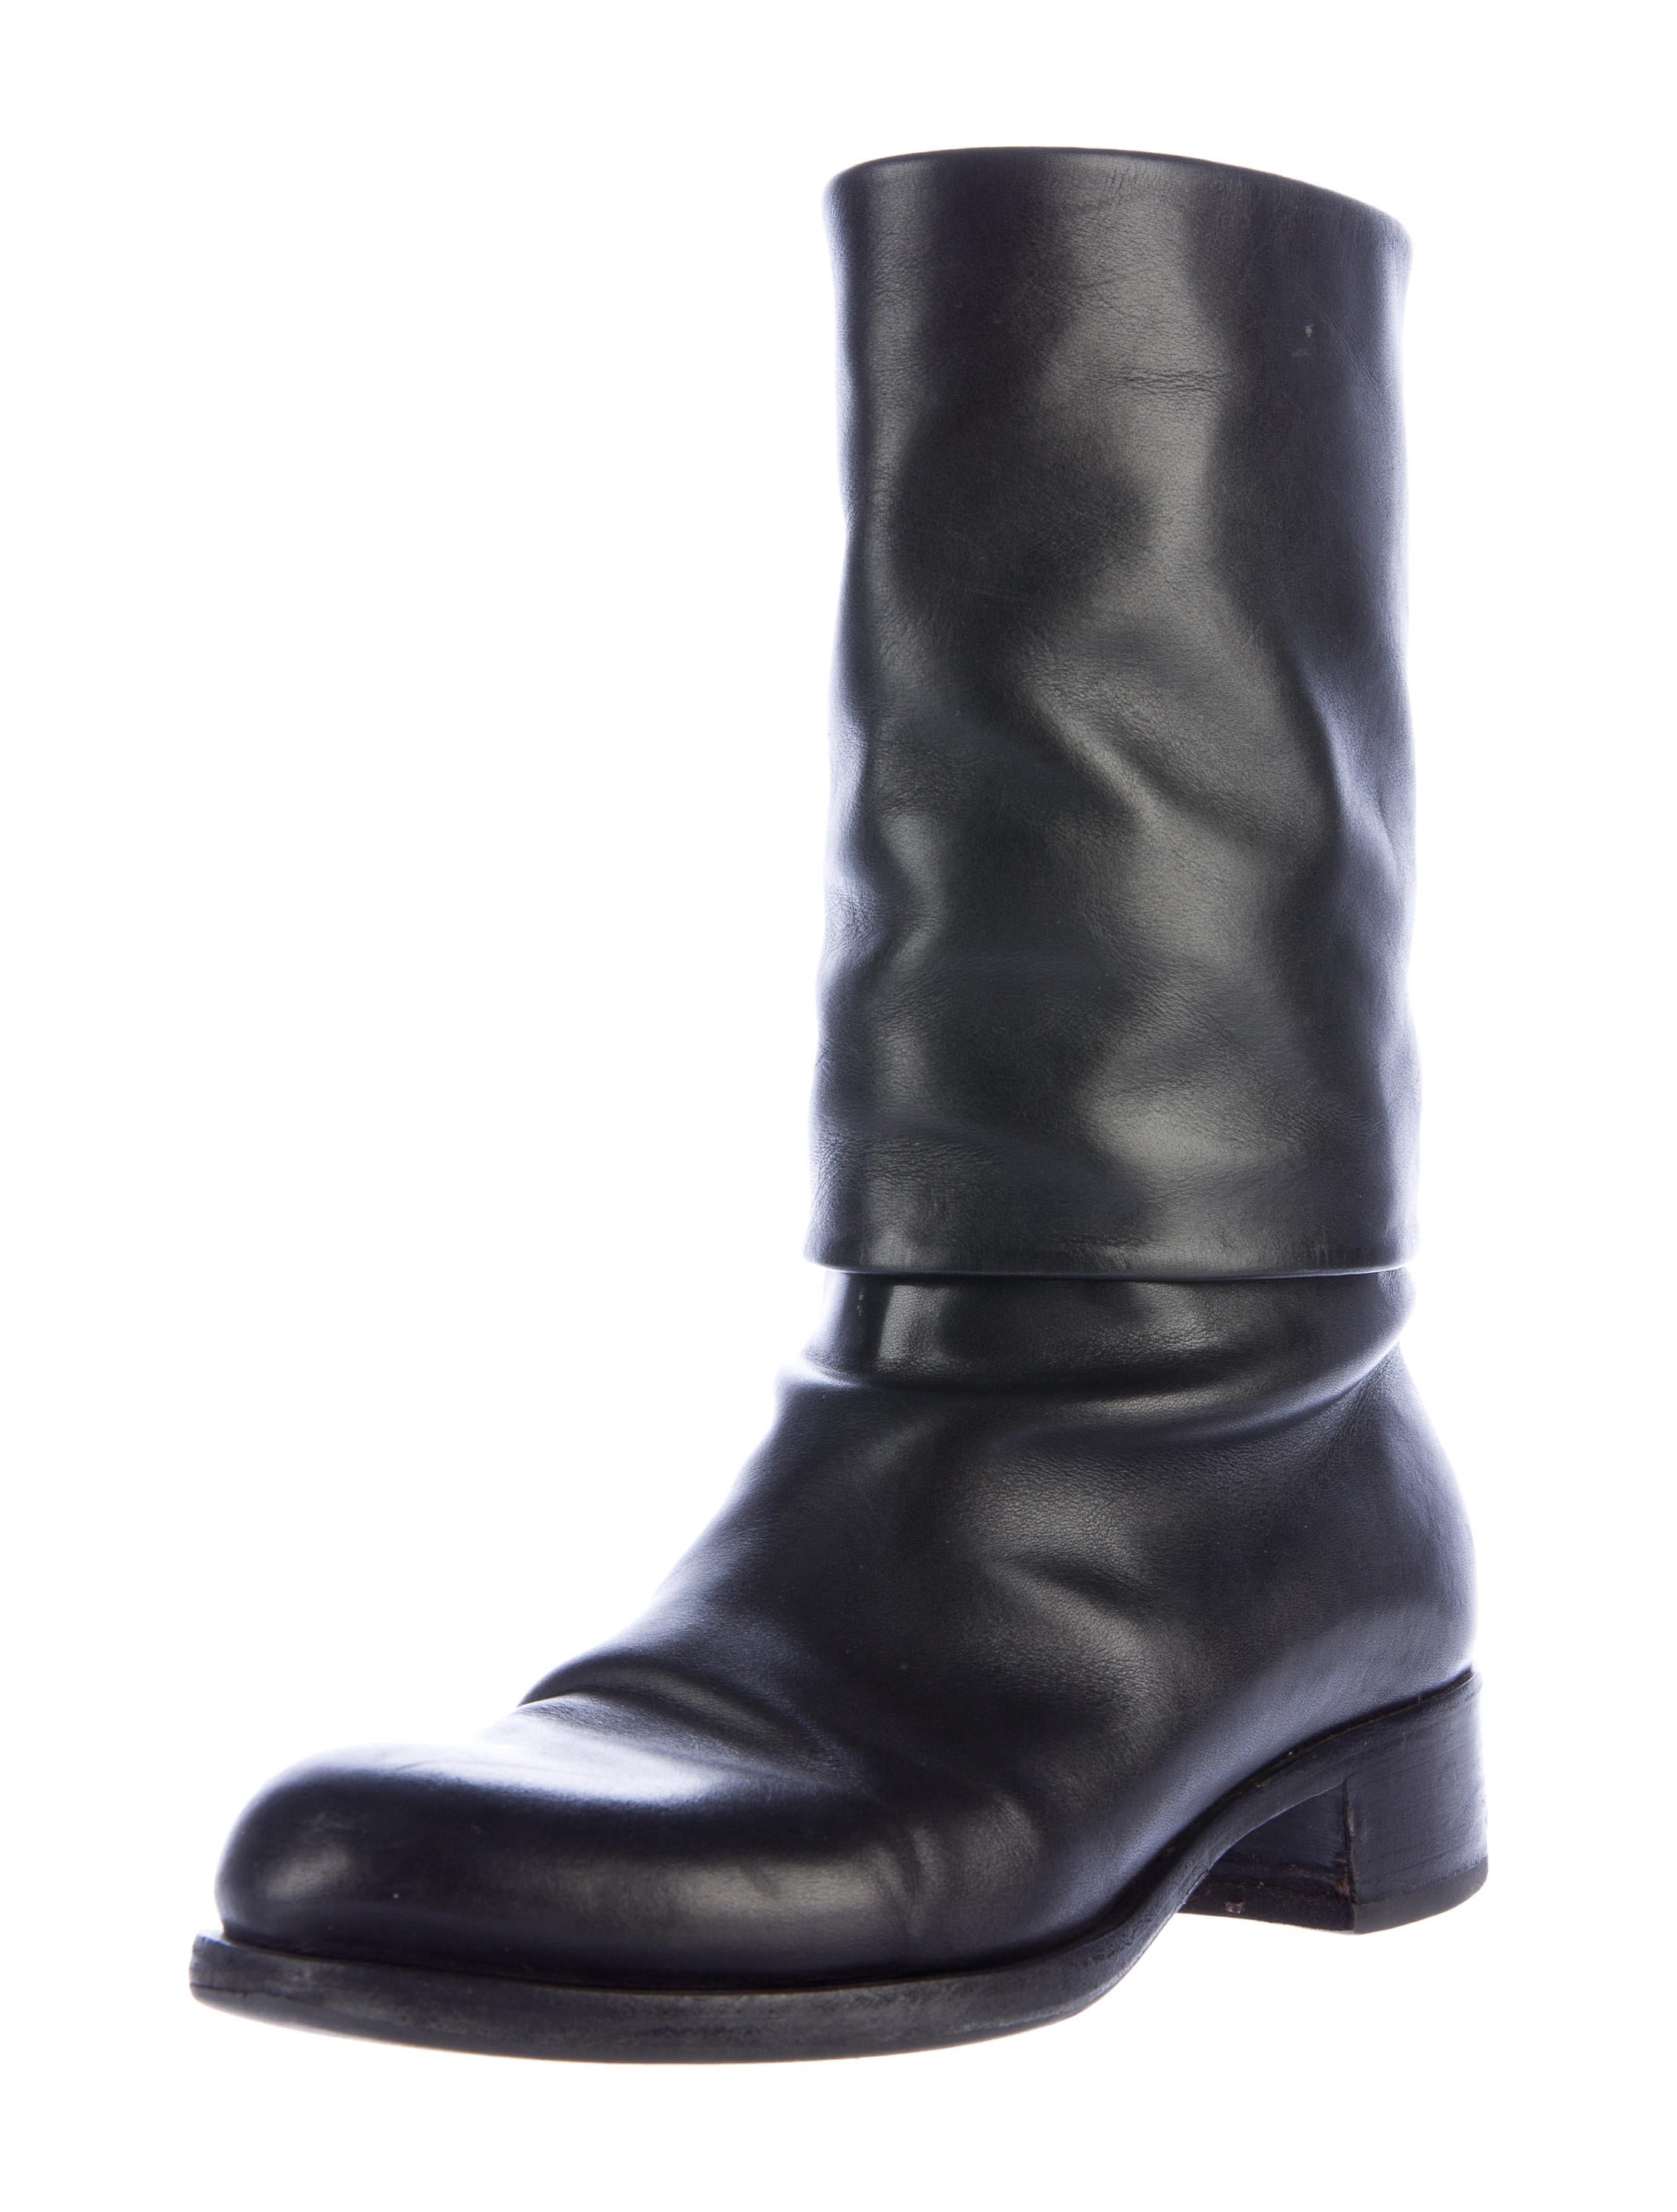 chanel cc ankle boots shoes cha160033 the realreal